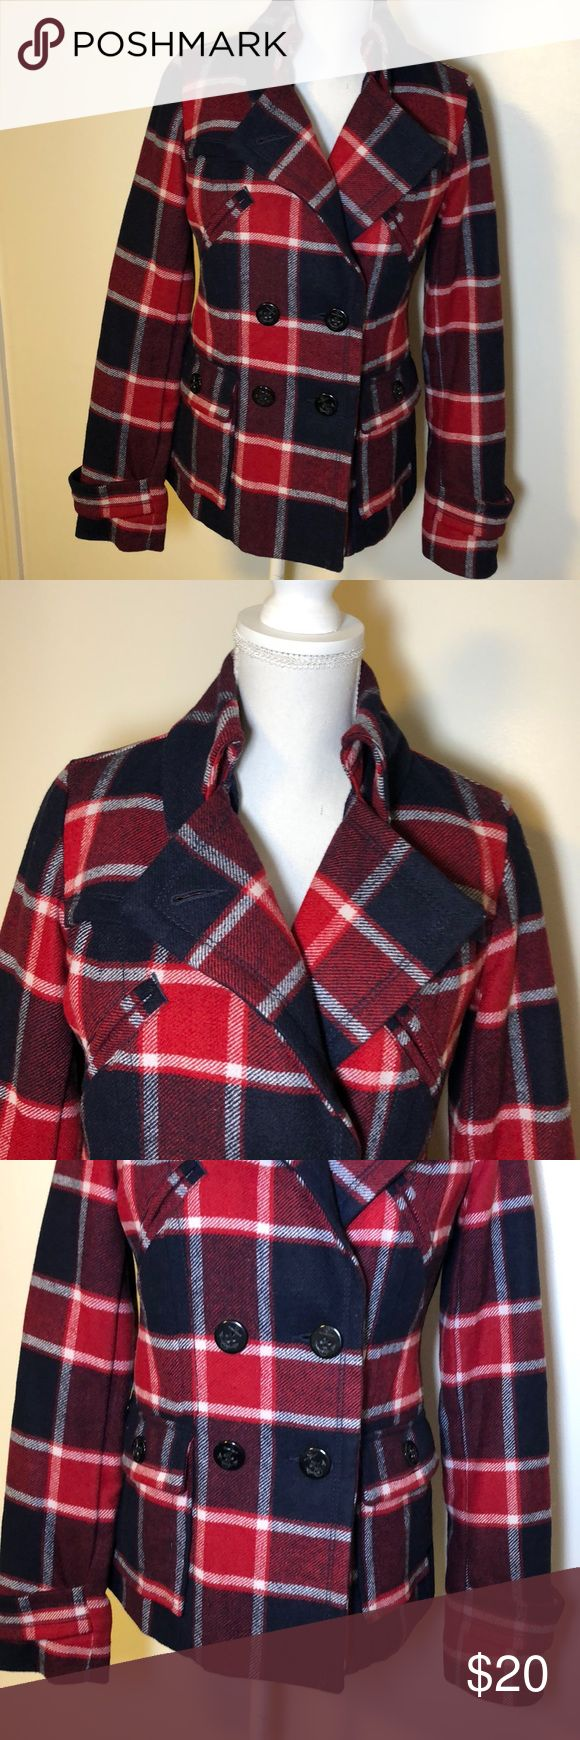 American Eagle Outfitters Button Up Jacket Plaid American Eagle Outfitters Women's size Small Button Up Jacket. Good condition, no rips or stains from a smoke free home! Same or next business day shipping on all purchases! American Eagle Outfitters Jackets & Coats